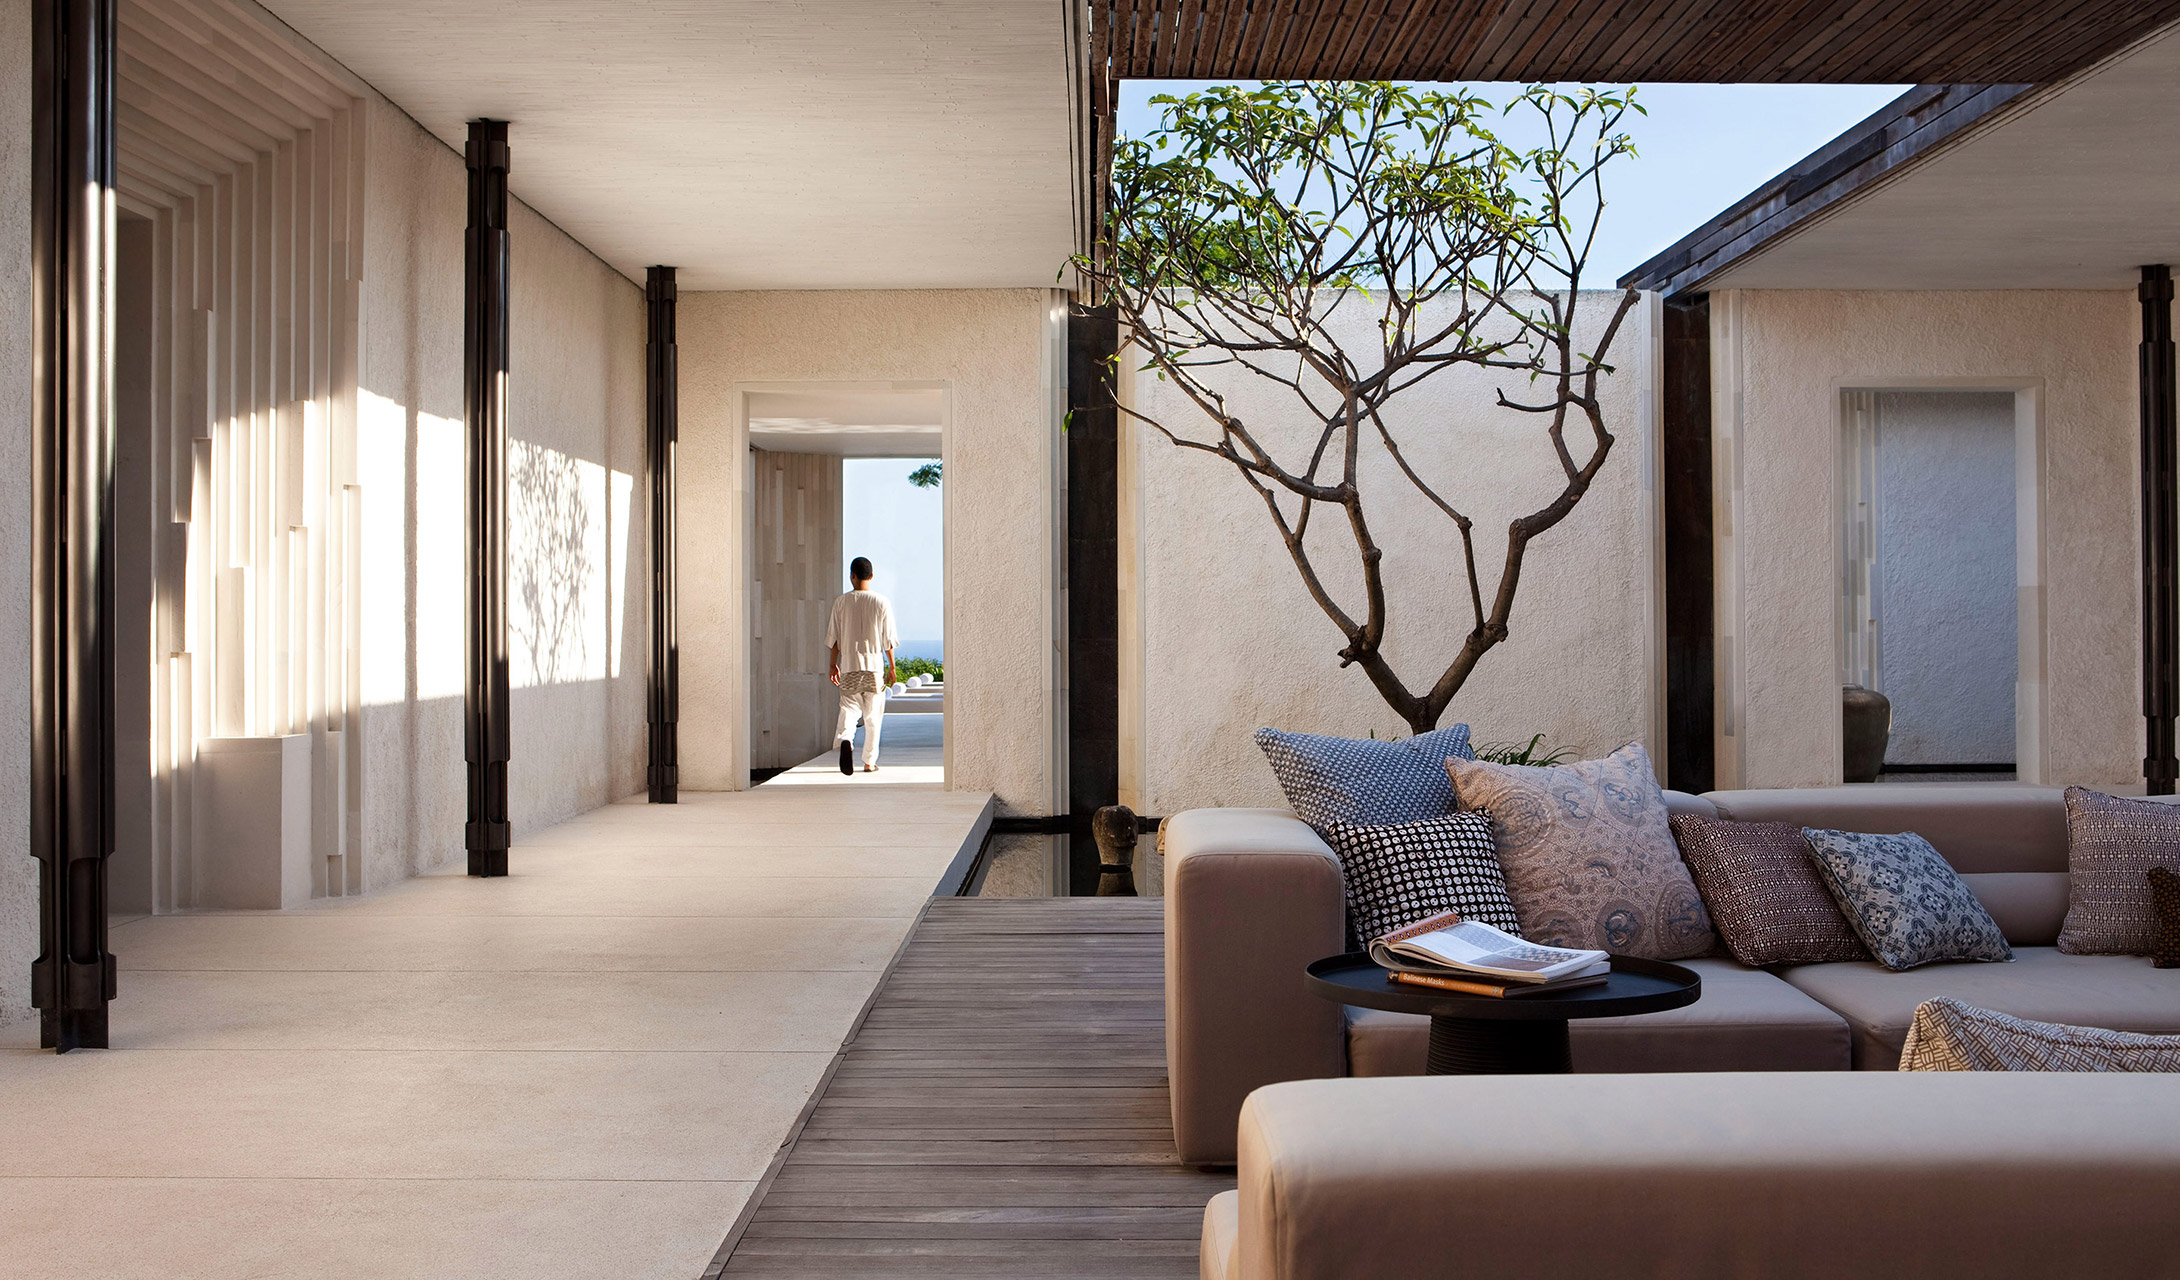 Luxury Resortstyle Villas In Bali Alila Villas Uluwatu By Woha as well Brises Na Arquitetura Brise Soleil 11 besides 298996862733040734 also Modern House With Floating Bedroom Clearview Residence By Altius Architecture additionally Cadbalear wordpress. on alila villas uluwatu bali woha